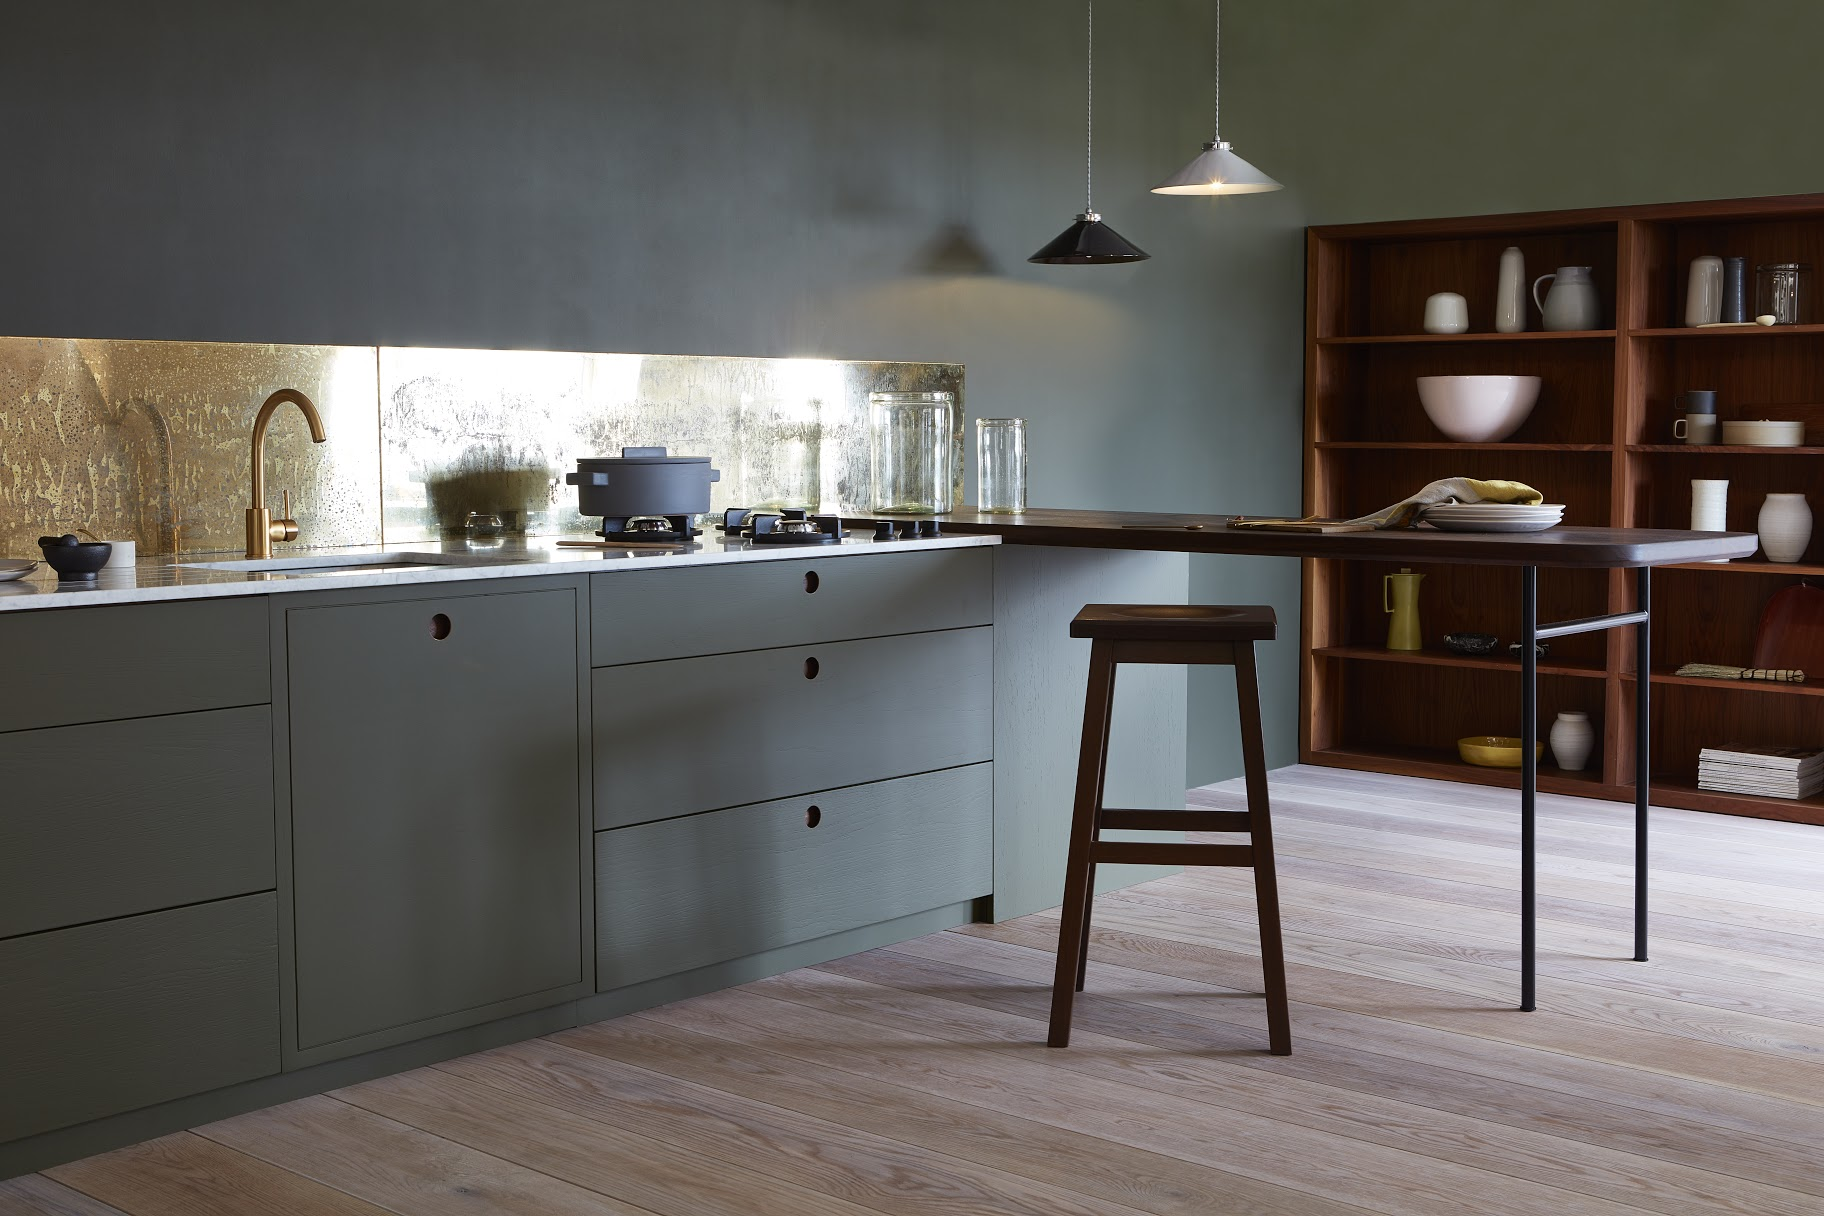 Customise Your Kitchen Cabinets With Bespoke Fronts By Naked ...